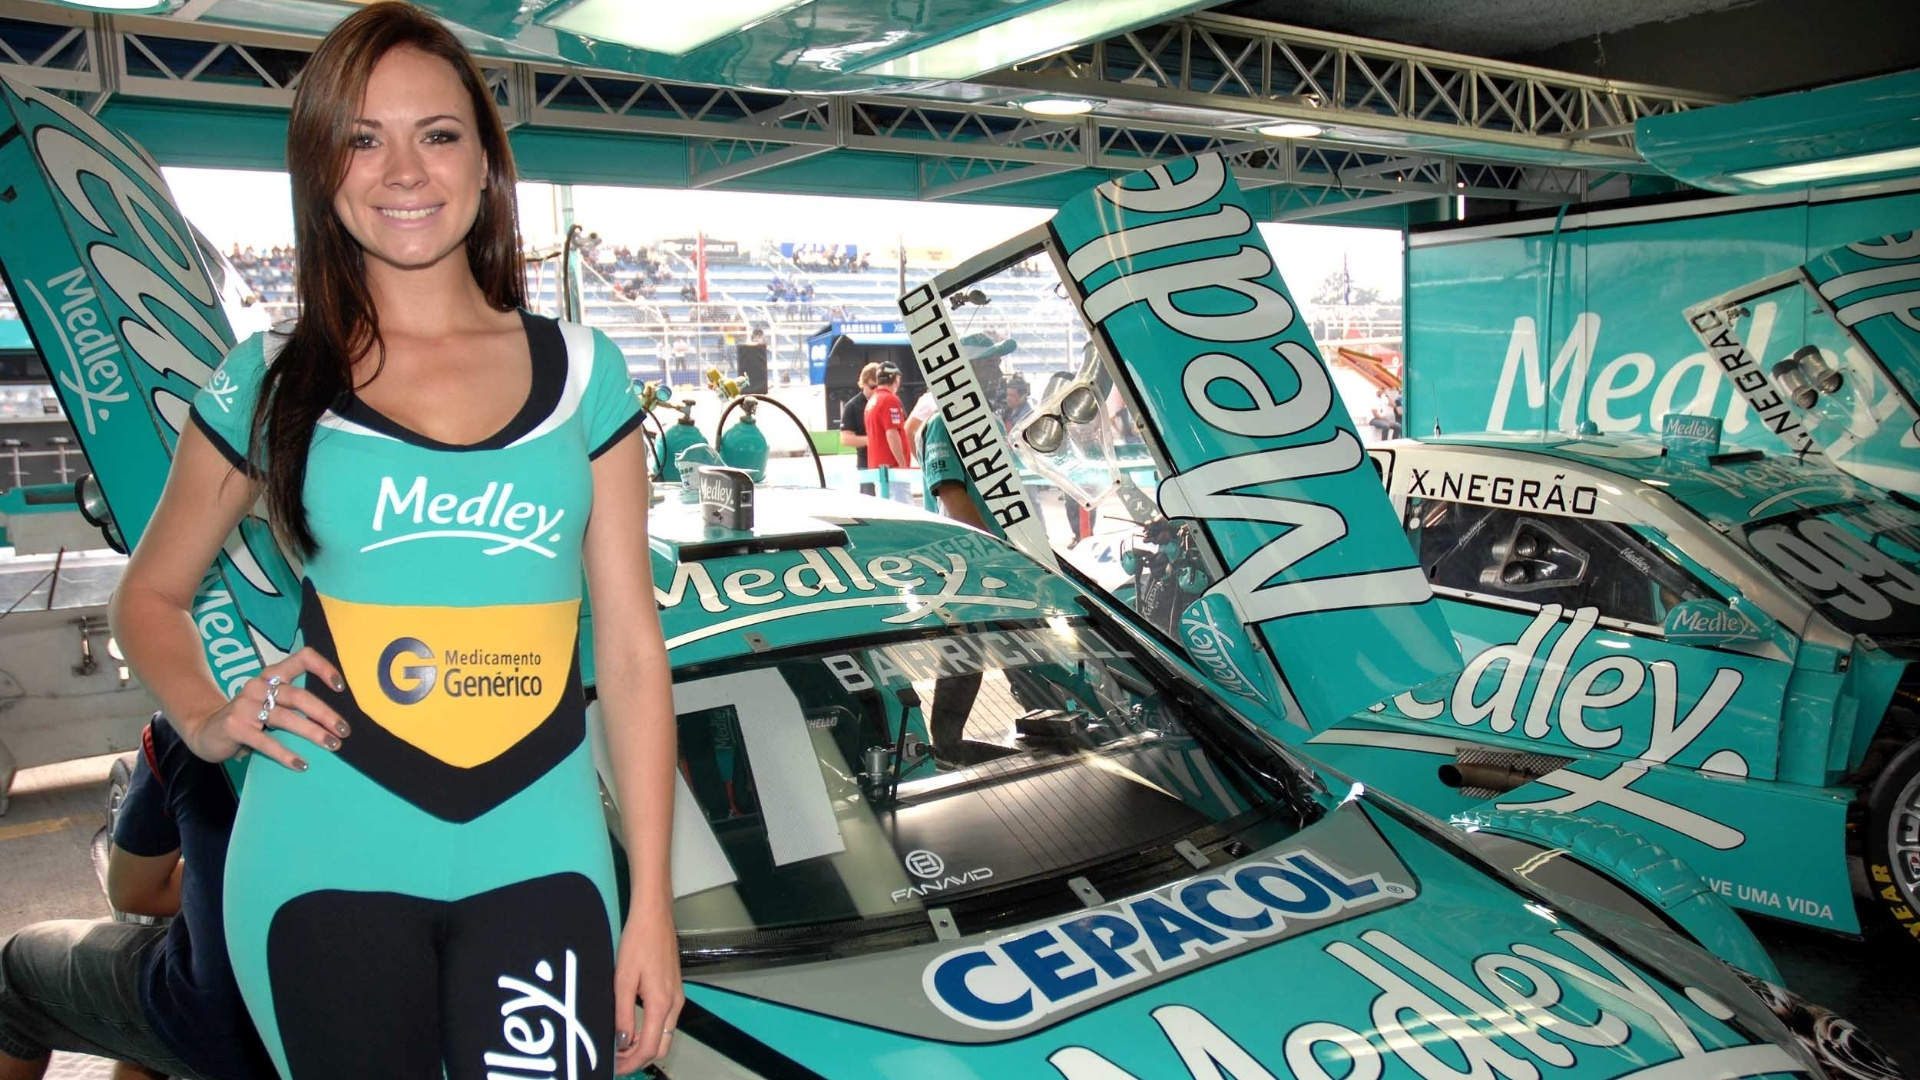 A bela Helen posa ao lado do carro de Rubens Barrichello antes da etapa de Curitiba da Stock Car